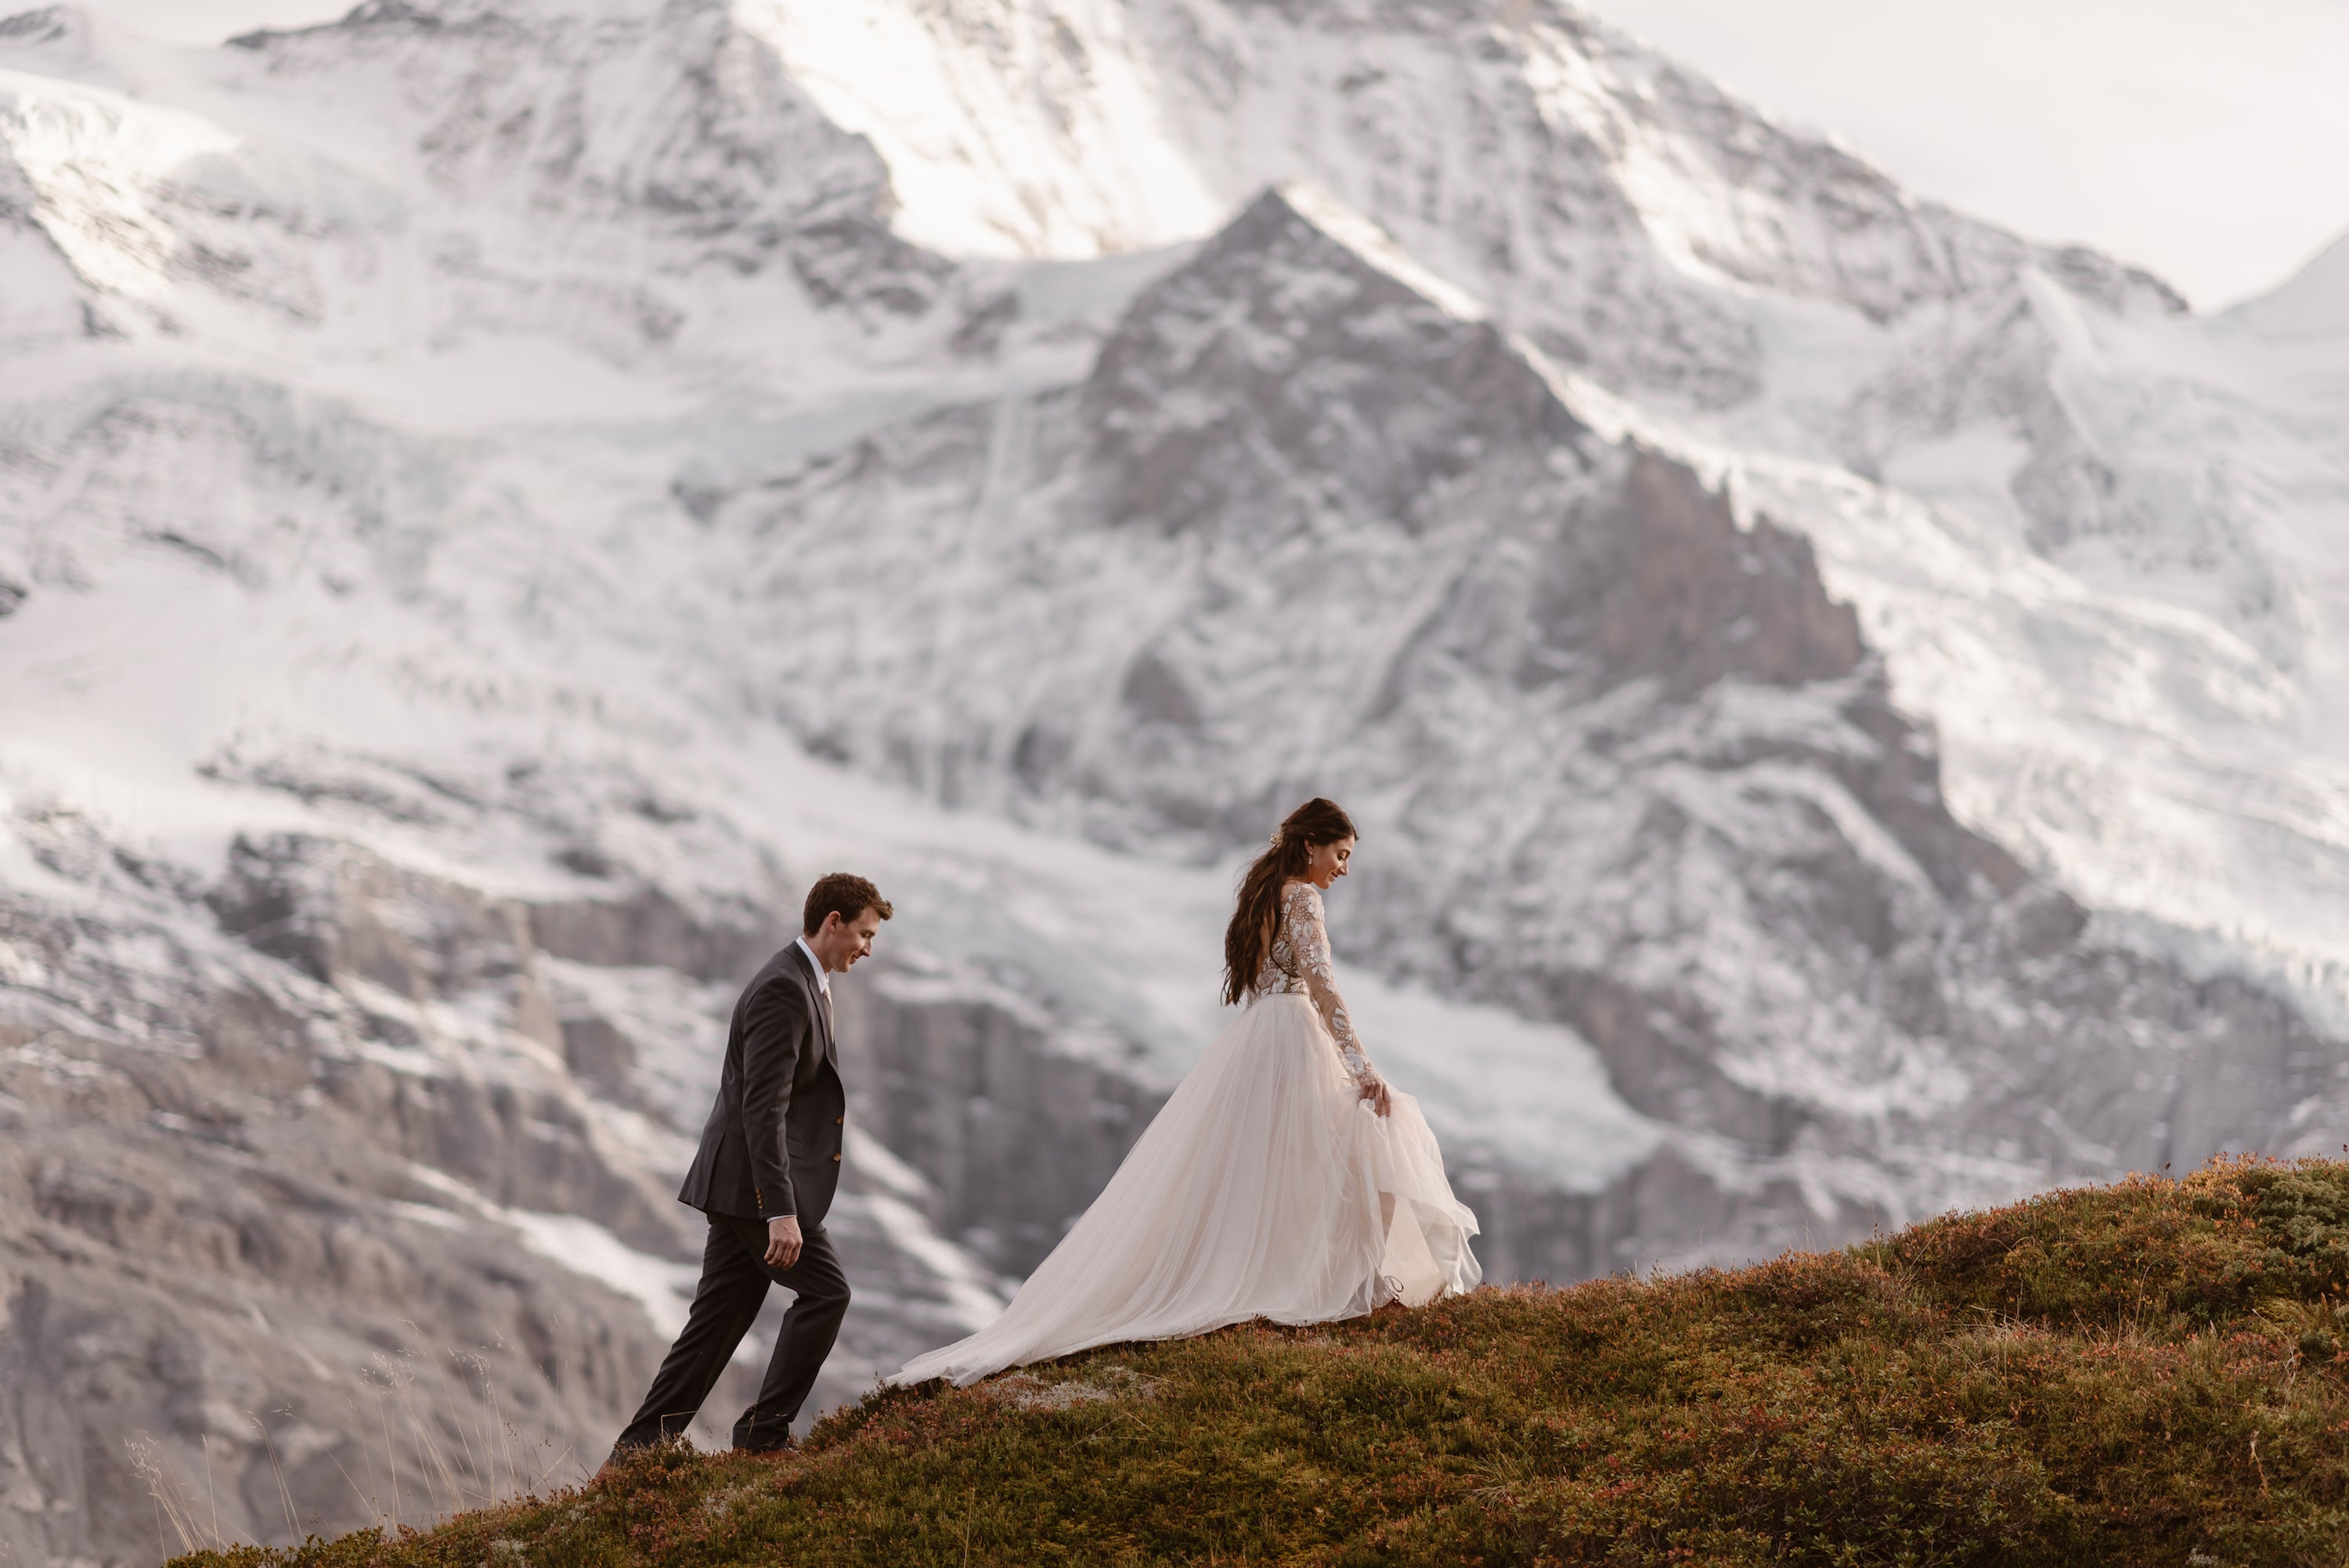 Wedding couple on snowy mountain